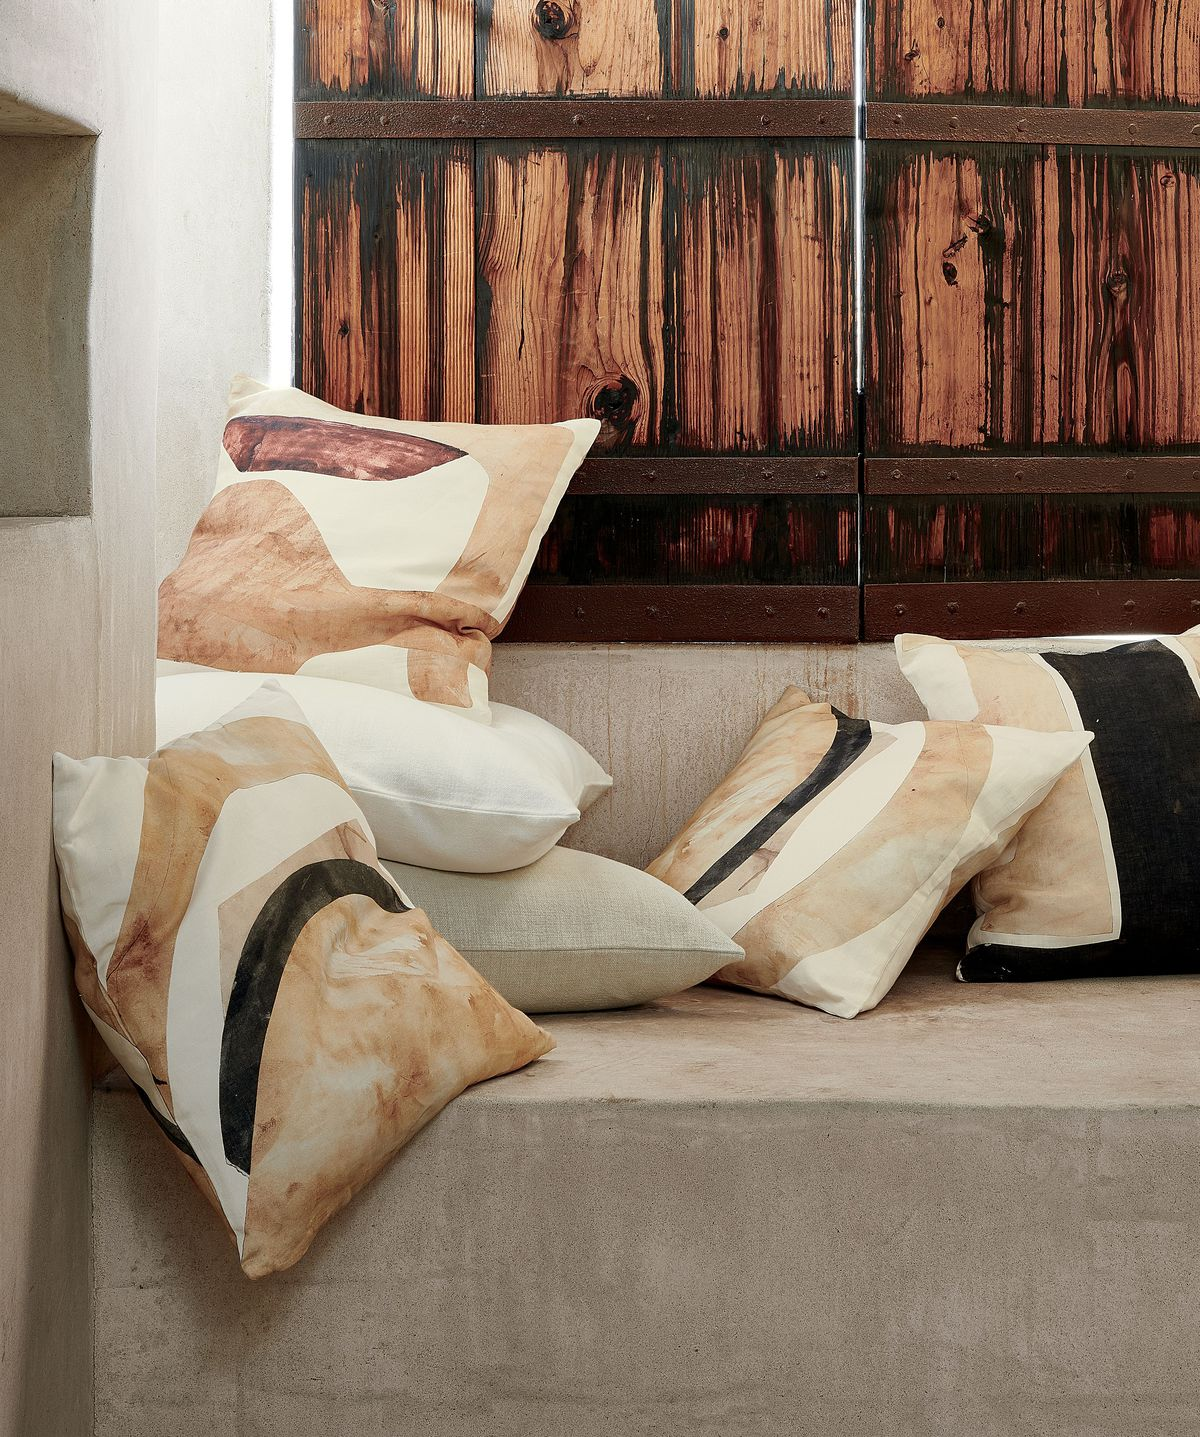 Pile of pillows in earth tones.